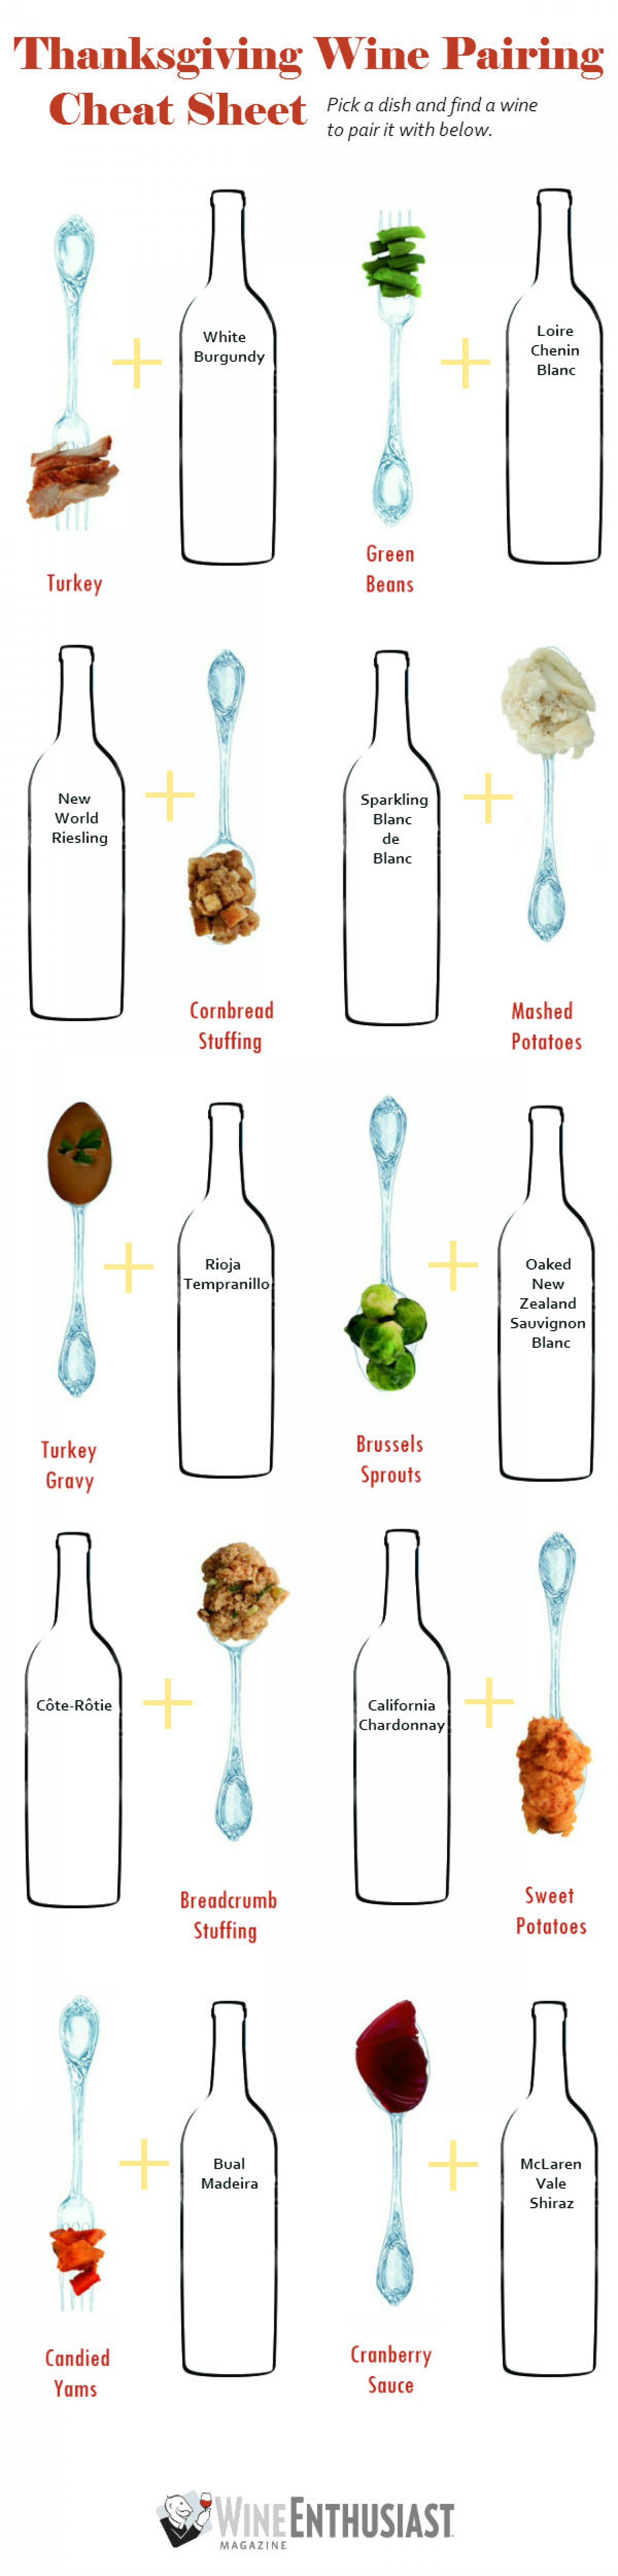 thanksgiving-winepairing-cheat-sheet--wine-with-turkey--more_528d31a50e4ba_w1500